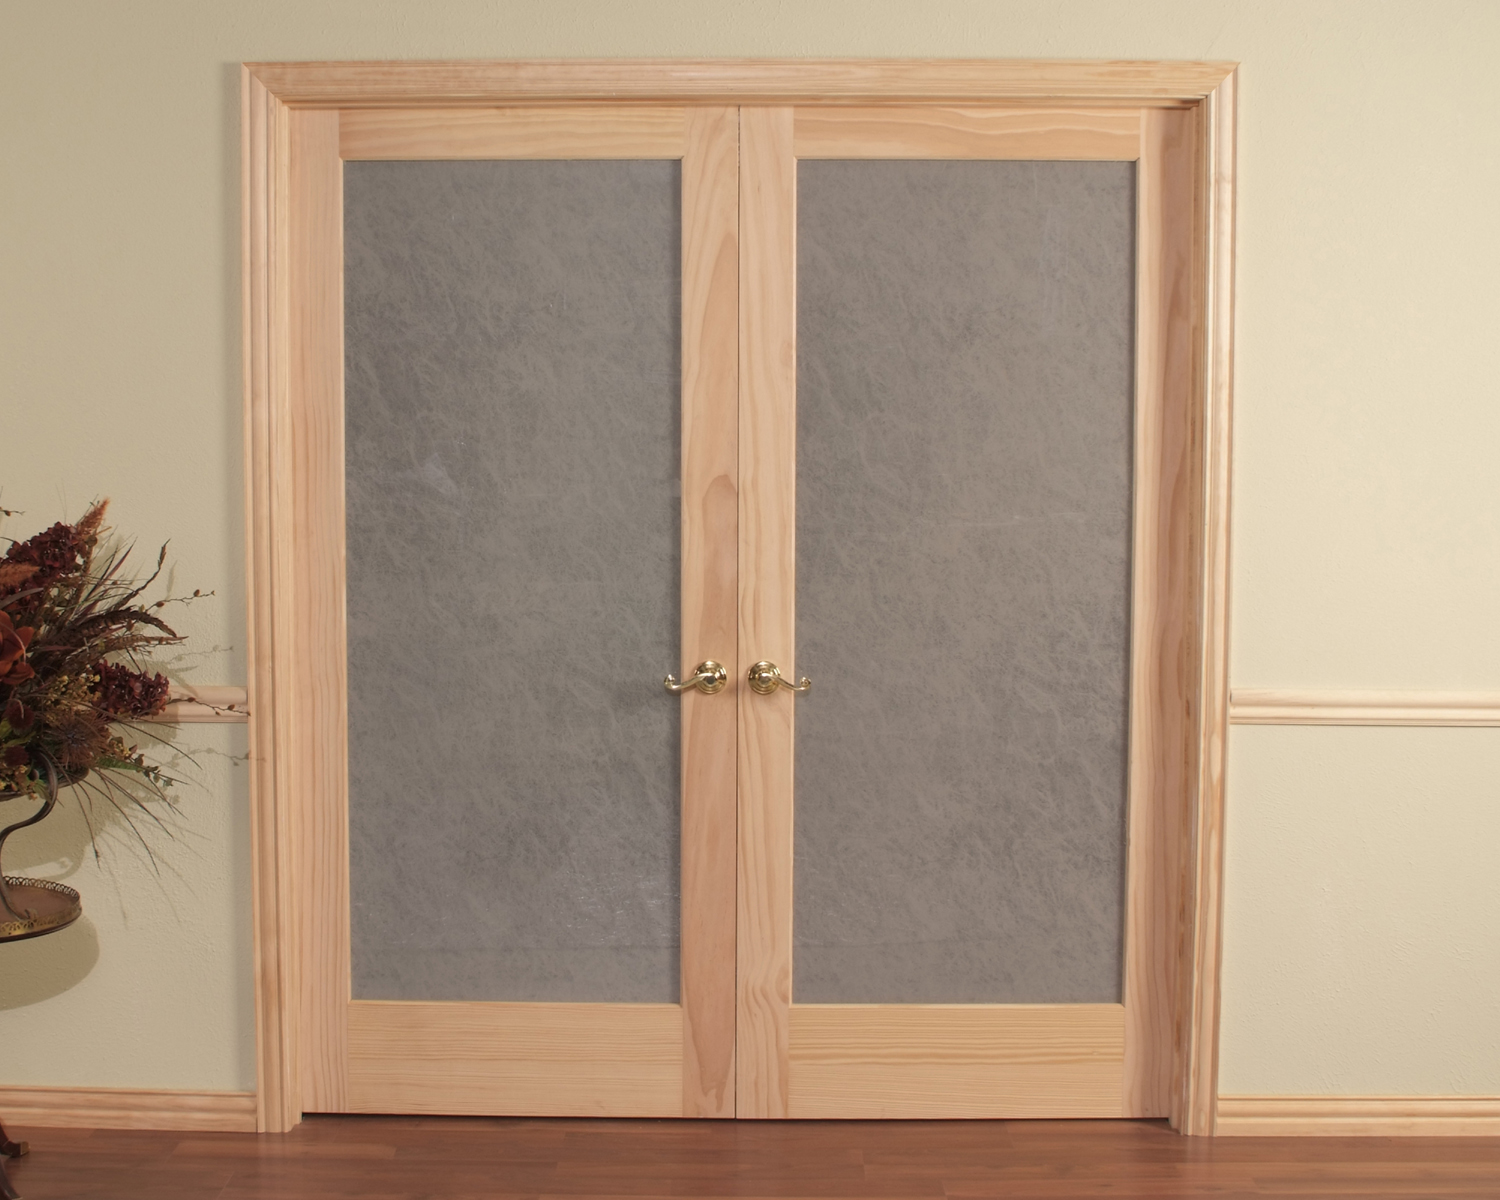 Le Meilleur Opaque Double Prehung Passage Door Frosted Tempered Glass Ce Mois Ci